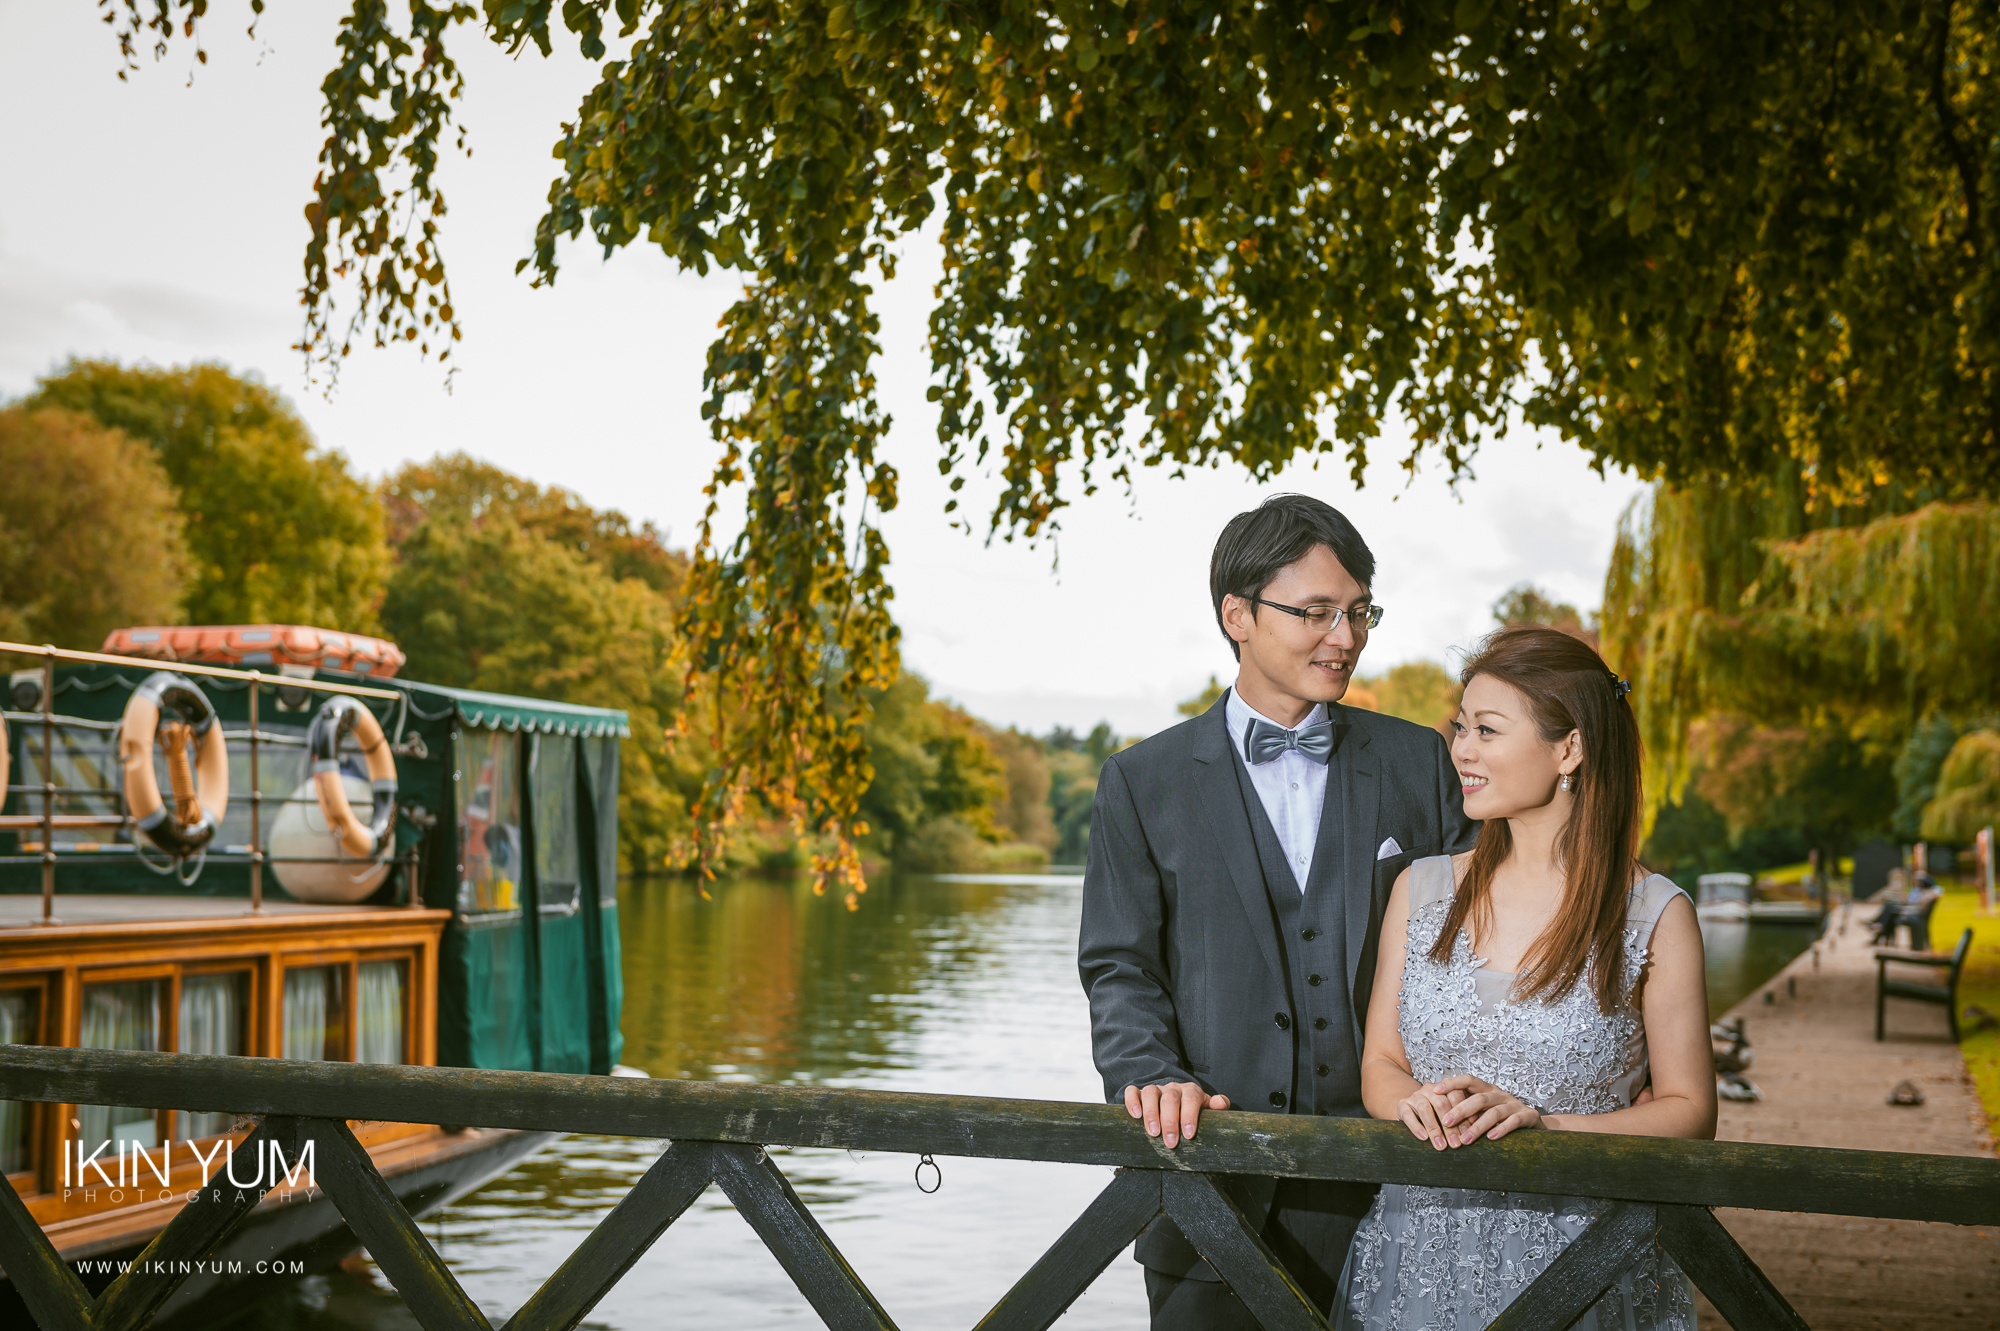 The oakley court Pre-Wedding Shoot - Ikin Yum Photography-039.jpg